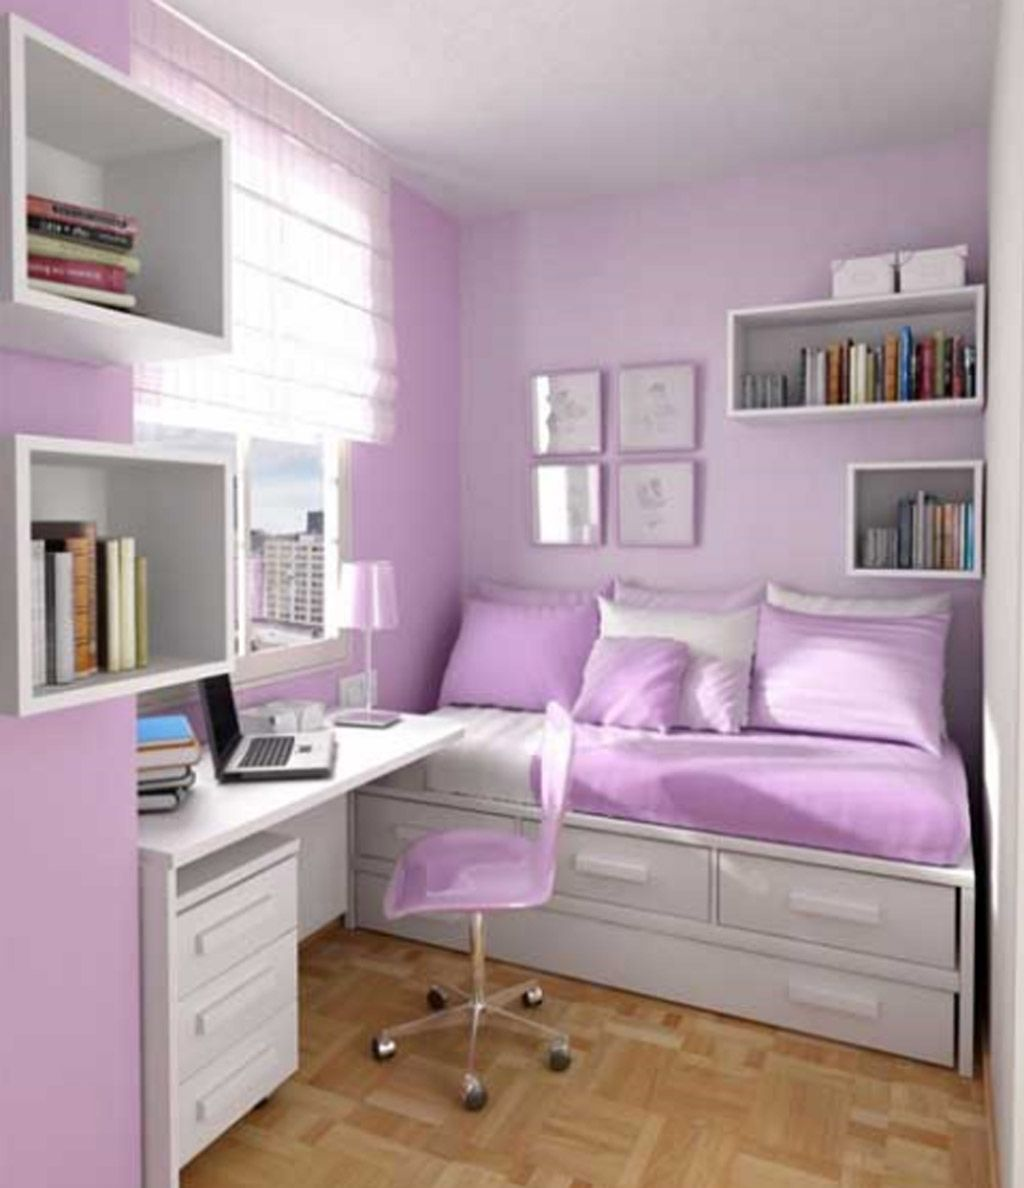 Teen Girls Room Designs Decor For Teenage Bedrooms  Room Decorating Ideas Light Purple